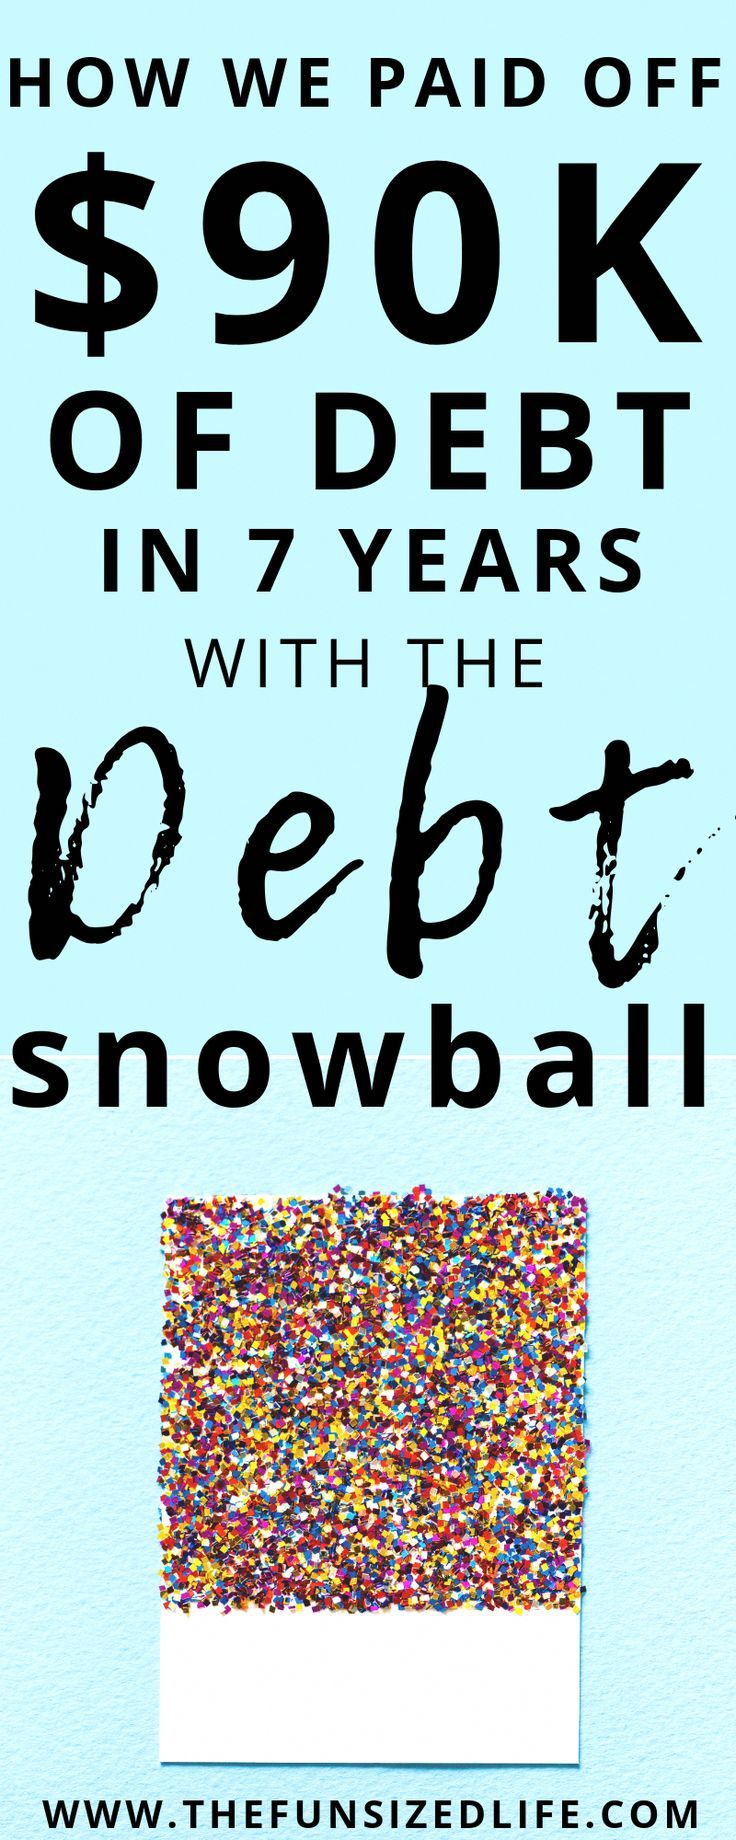 How We Paid Off 90 000 Of Debt In 7 Years With The Debt Snowball Debt Snowball Dave Ramsey Debt Snowball Debt Payoff